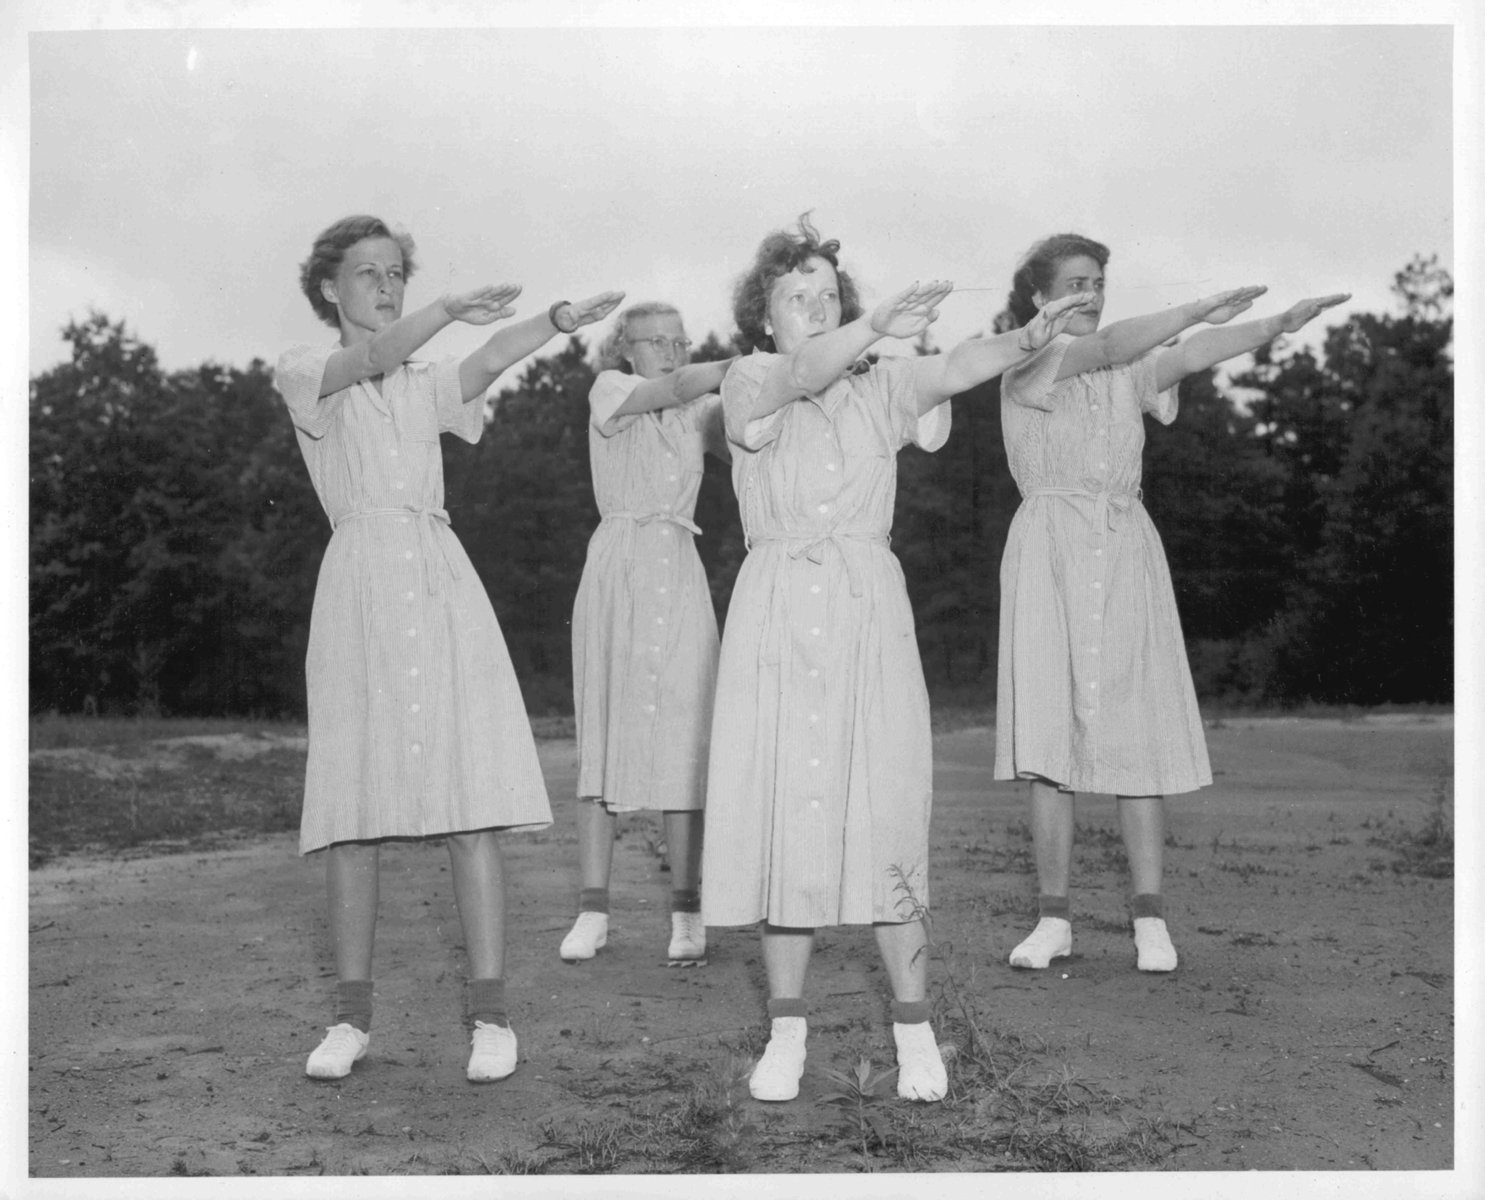 Exercise in the 1950